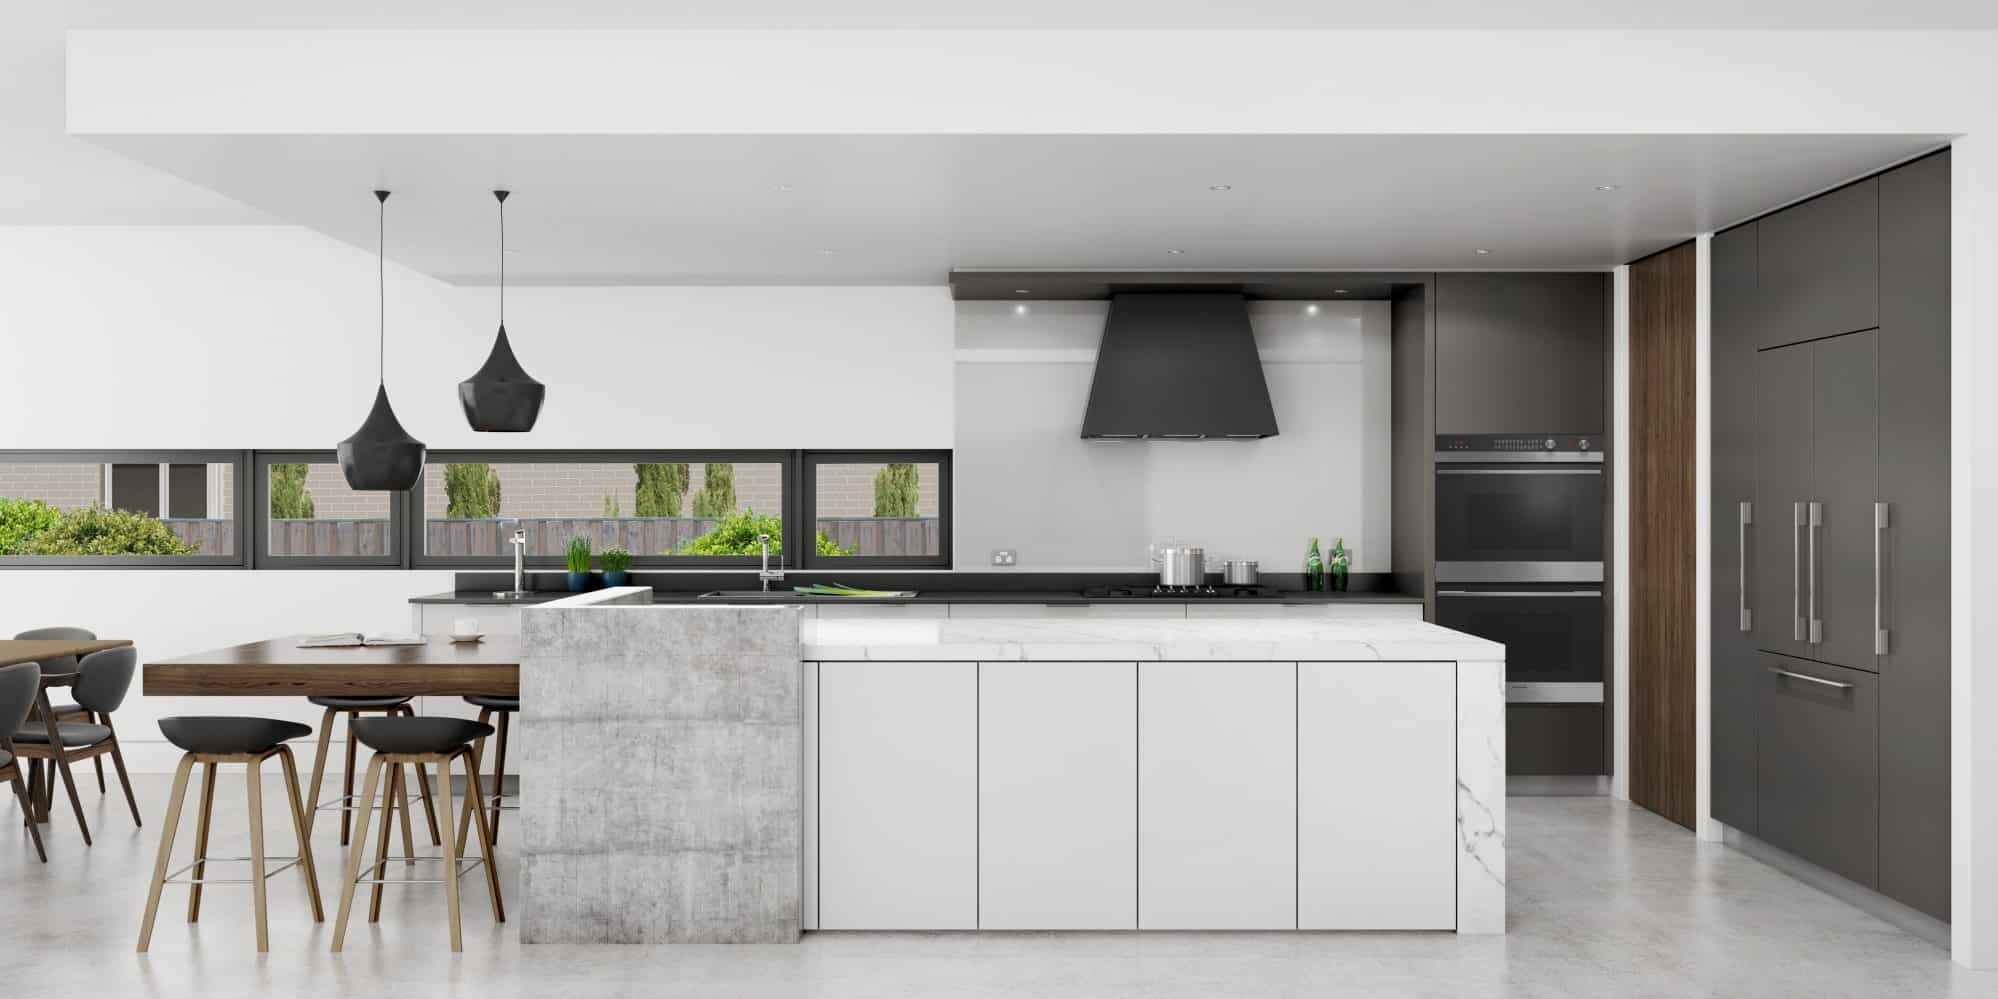 The proposed kitchen design